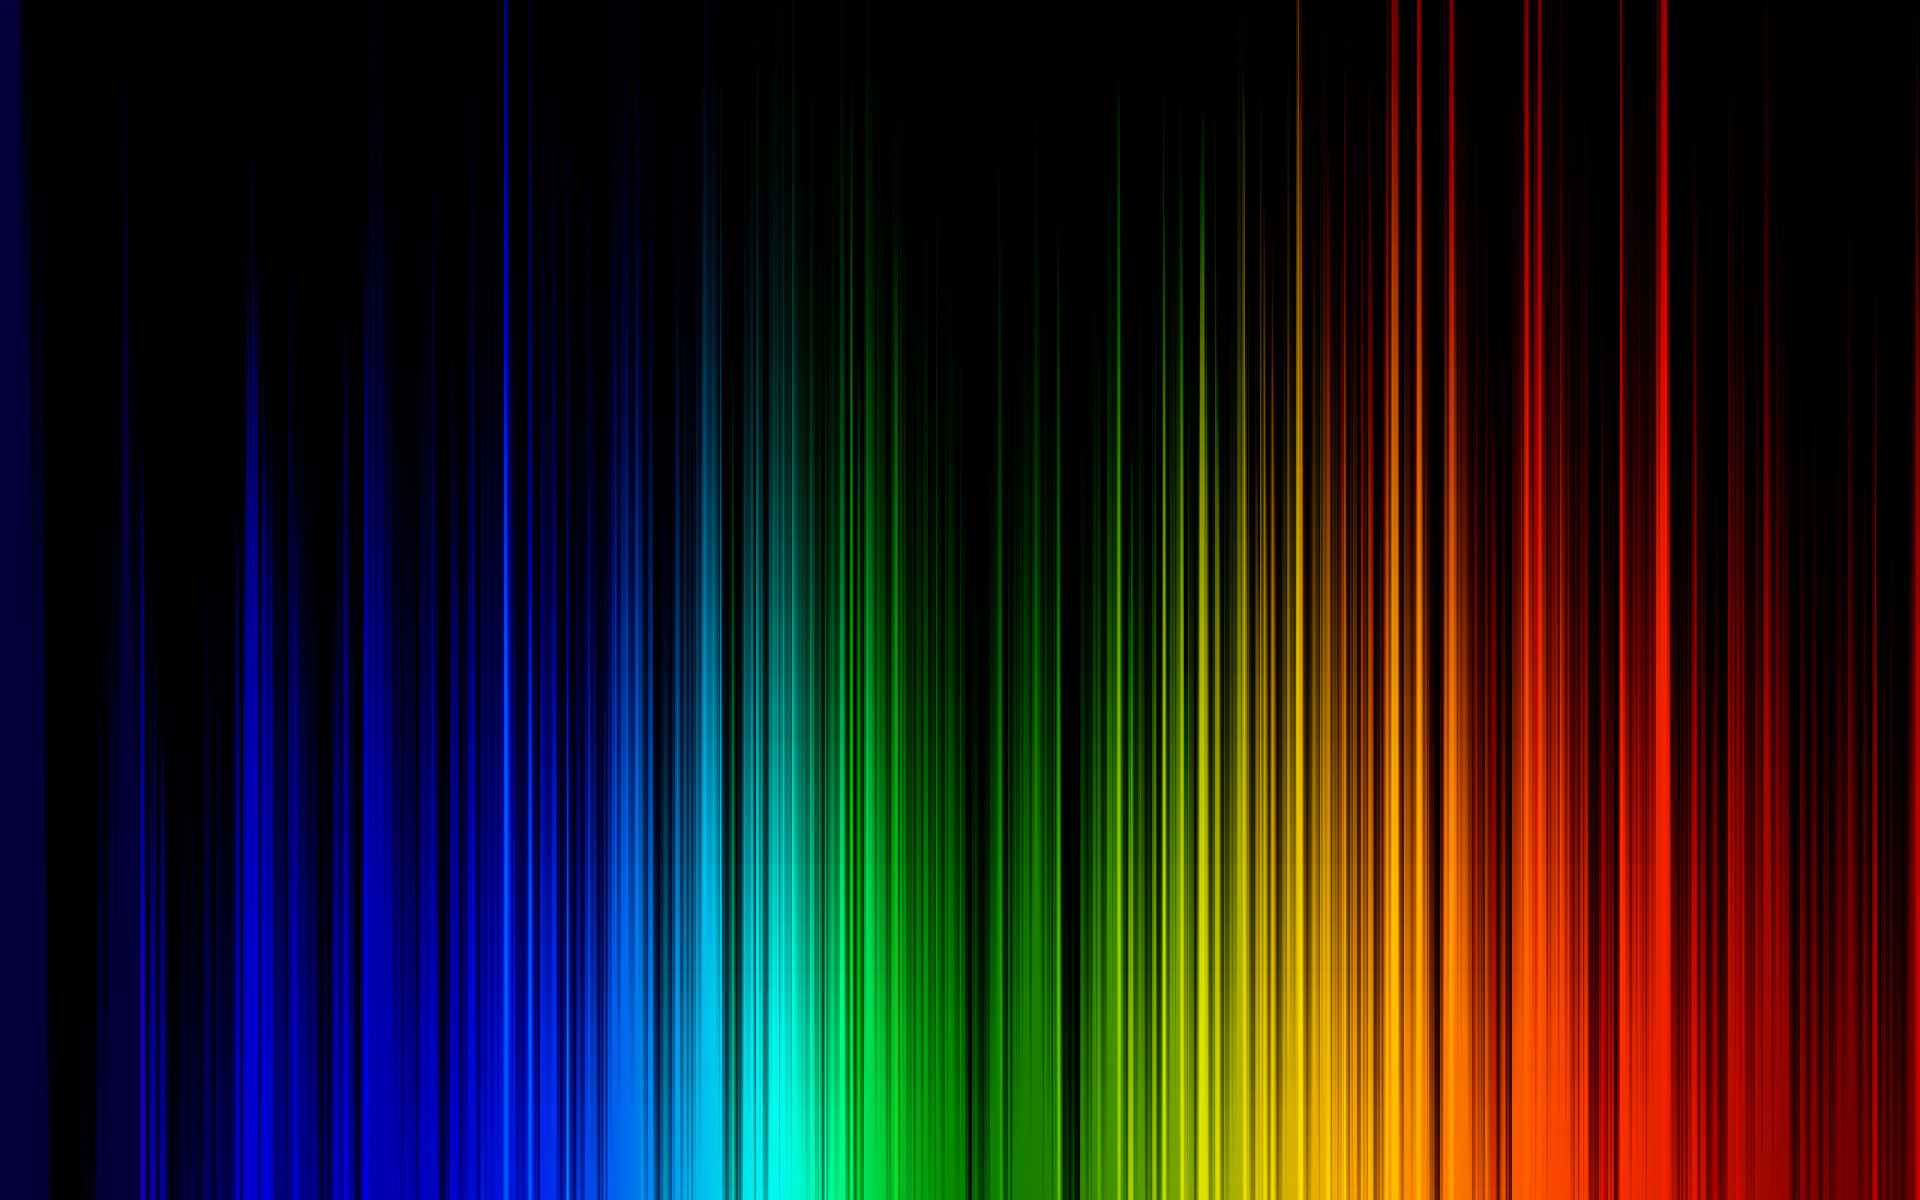 Color Curtains desktop wallpaper 1920x1200